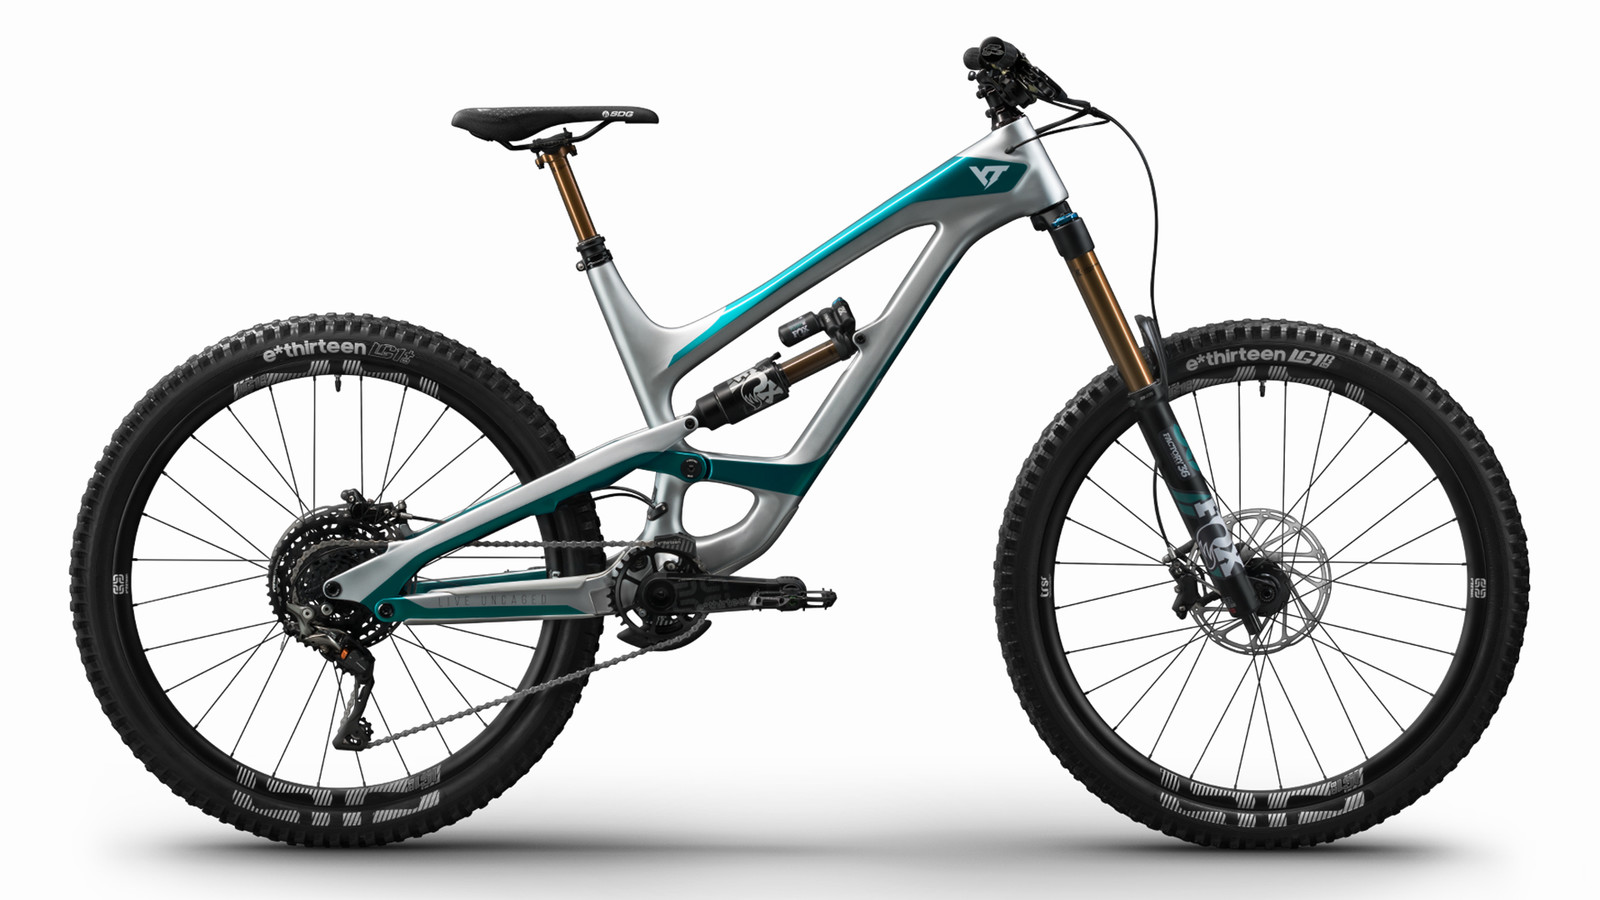 9e02b2bc011 YT Launches New Range for 2019 - Mountain Bikes Press Releases ...